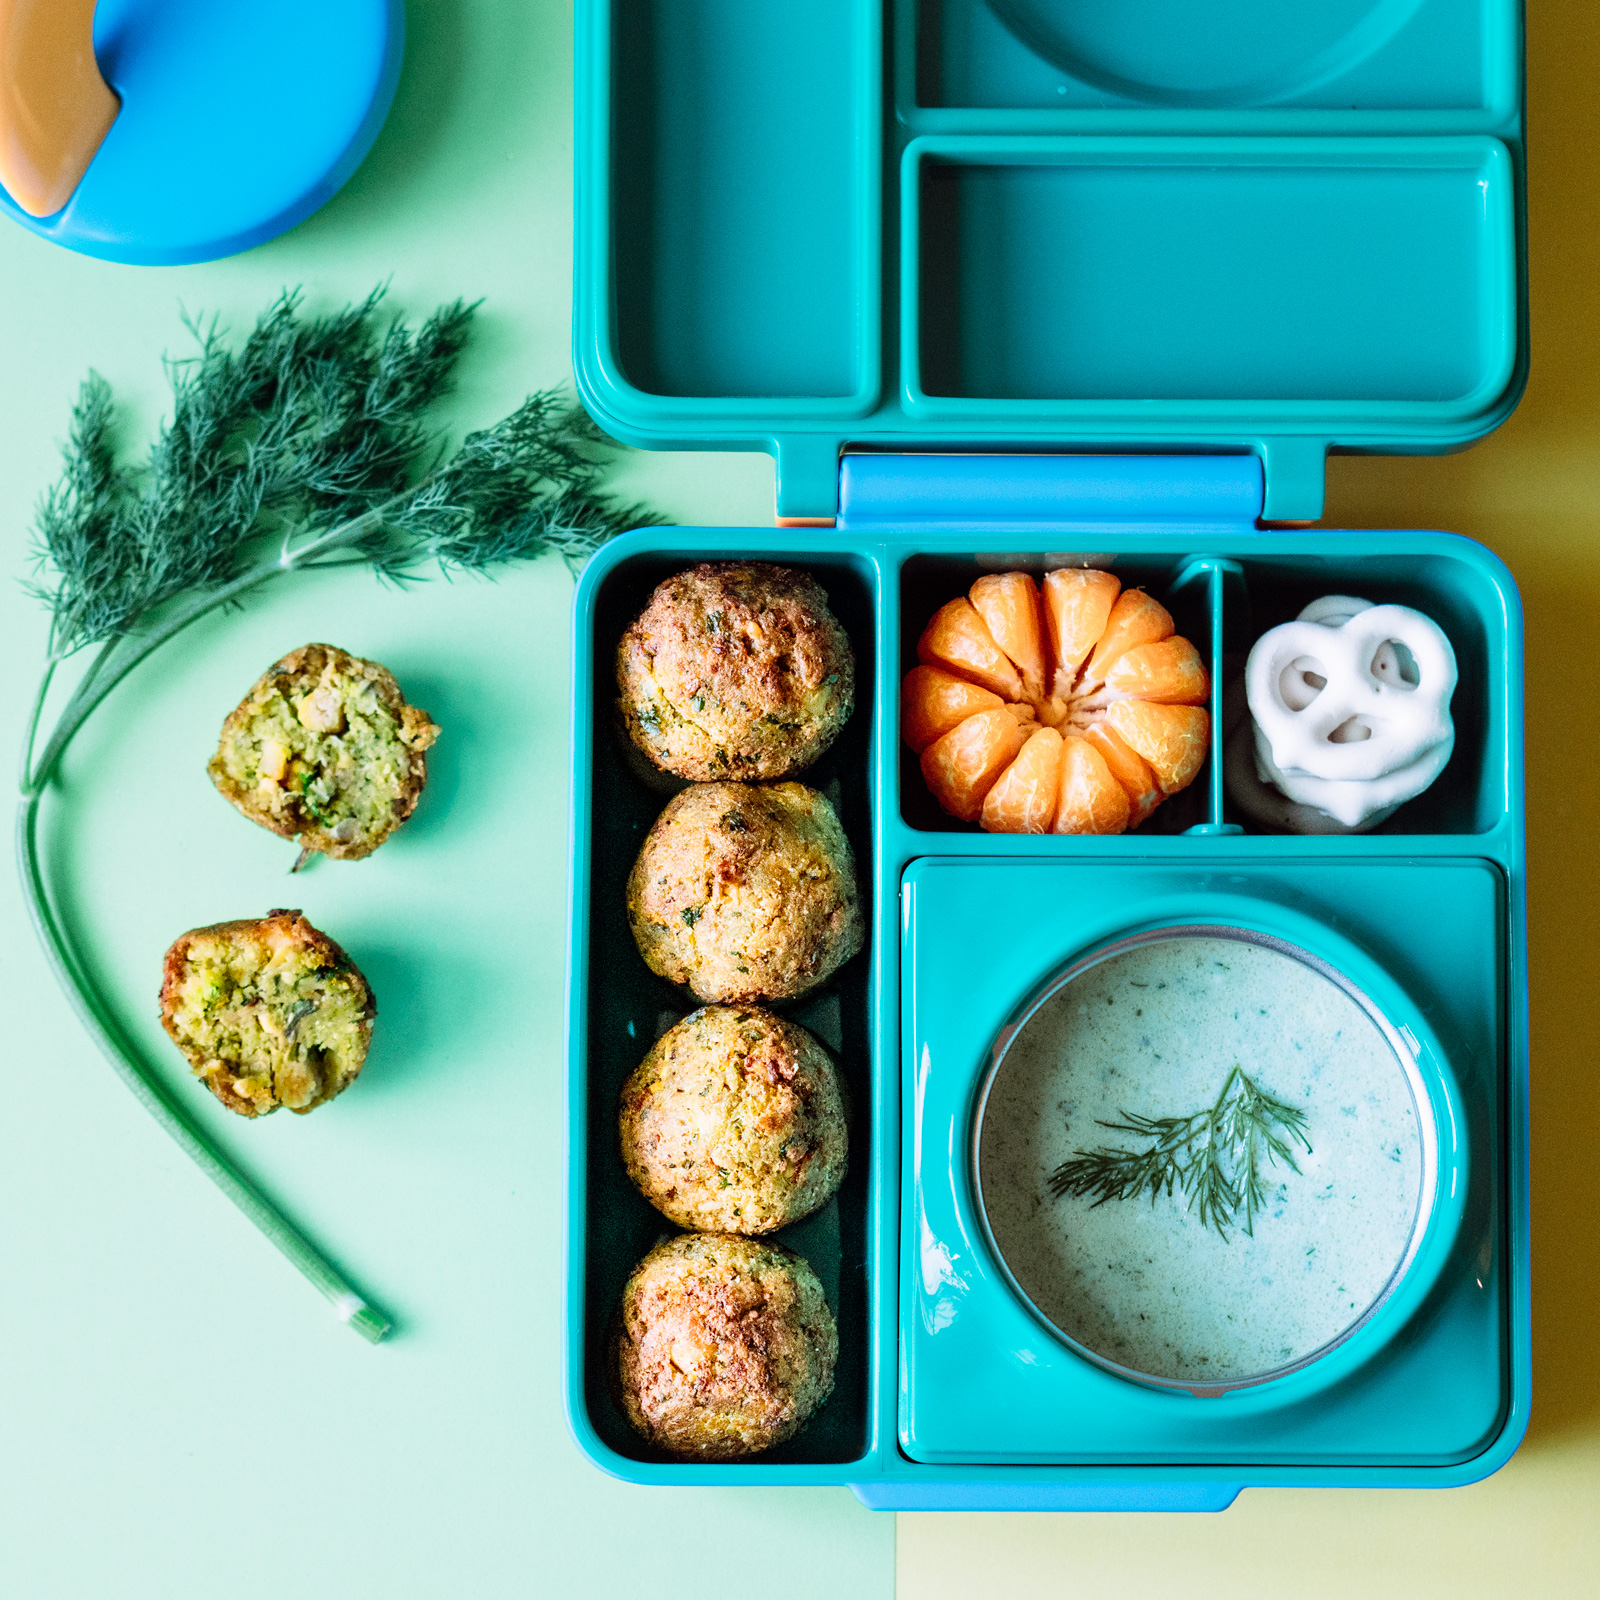 Cauliflower falafels in lunchbox